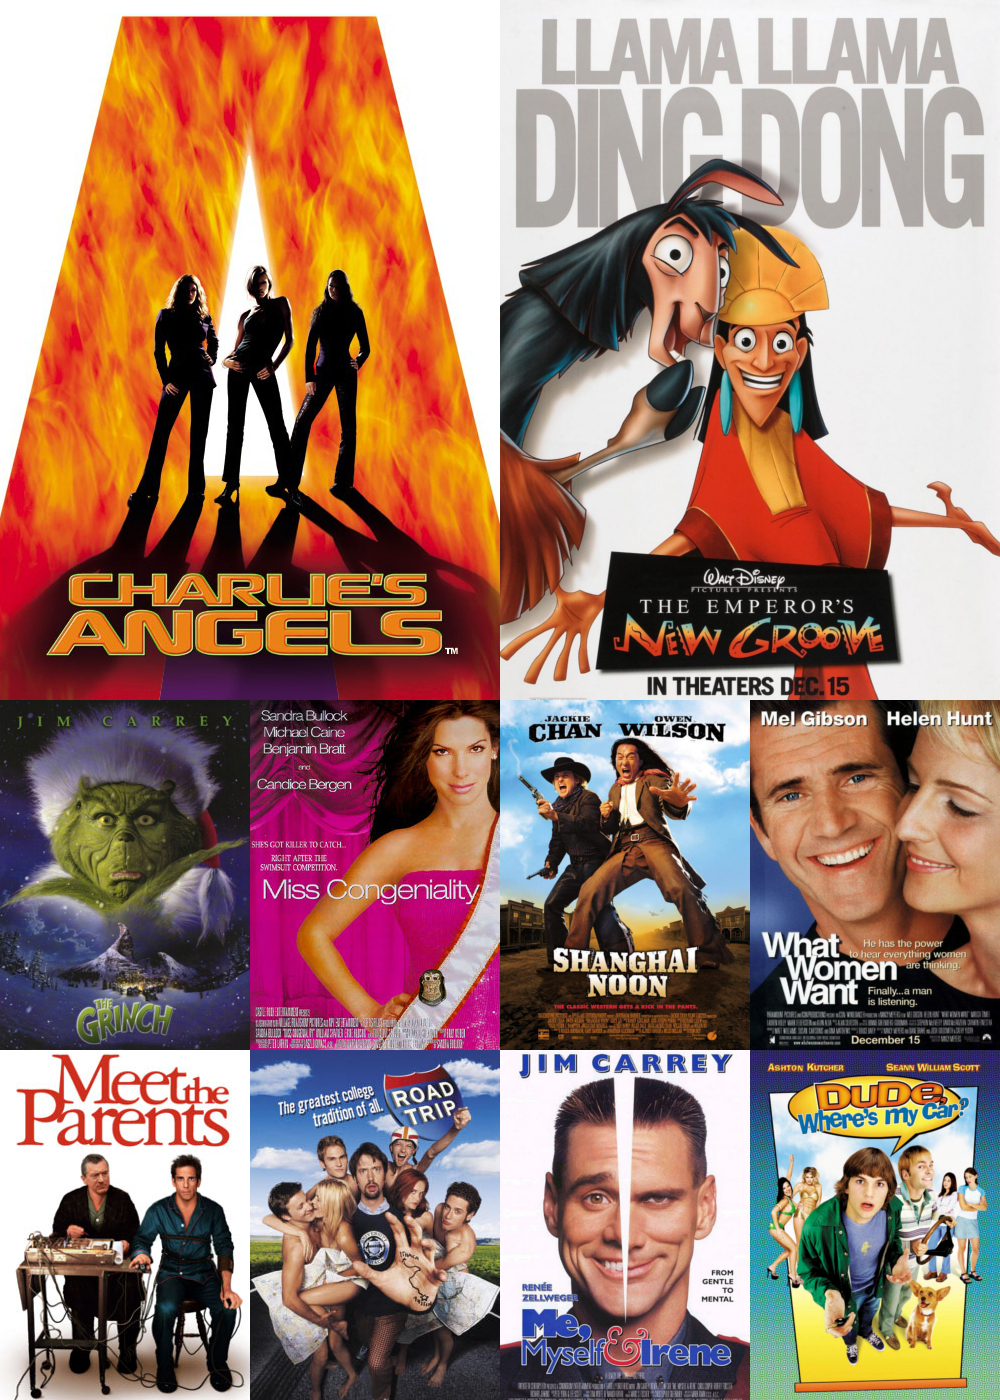 Top 11-20 Comedy Movies 2000